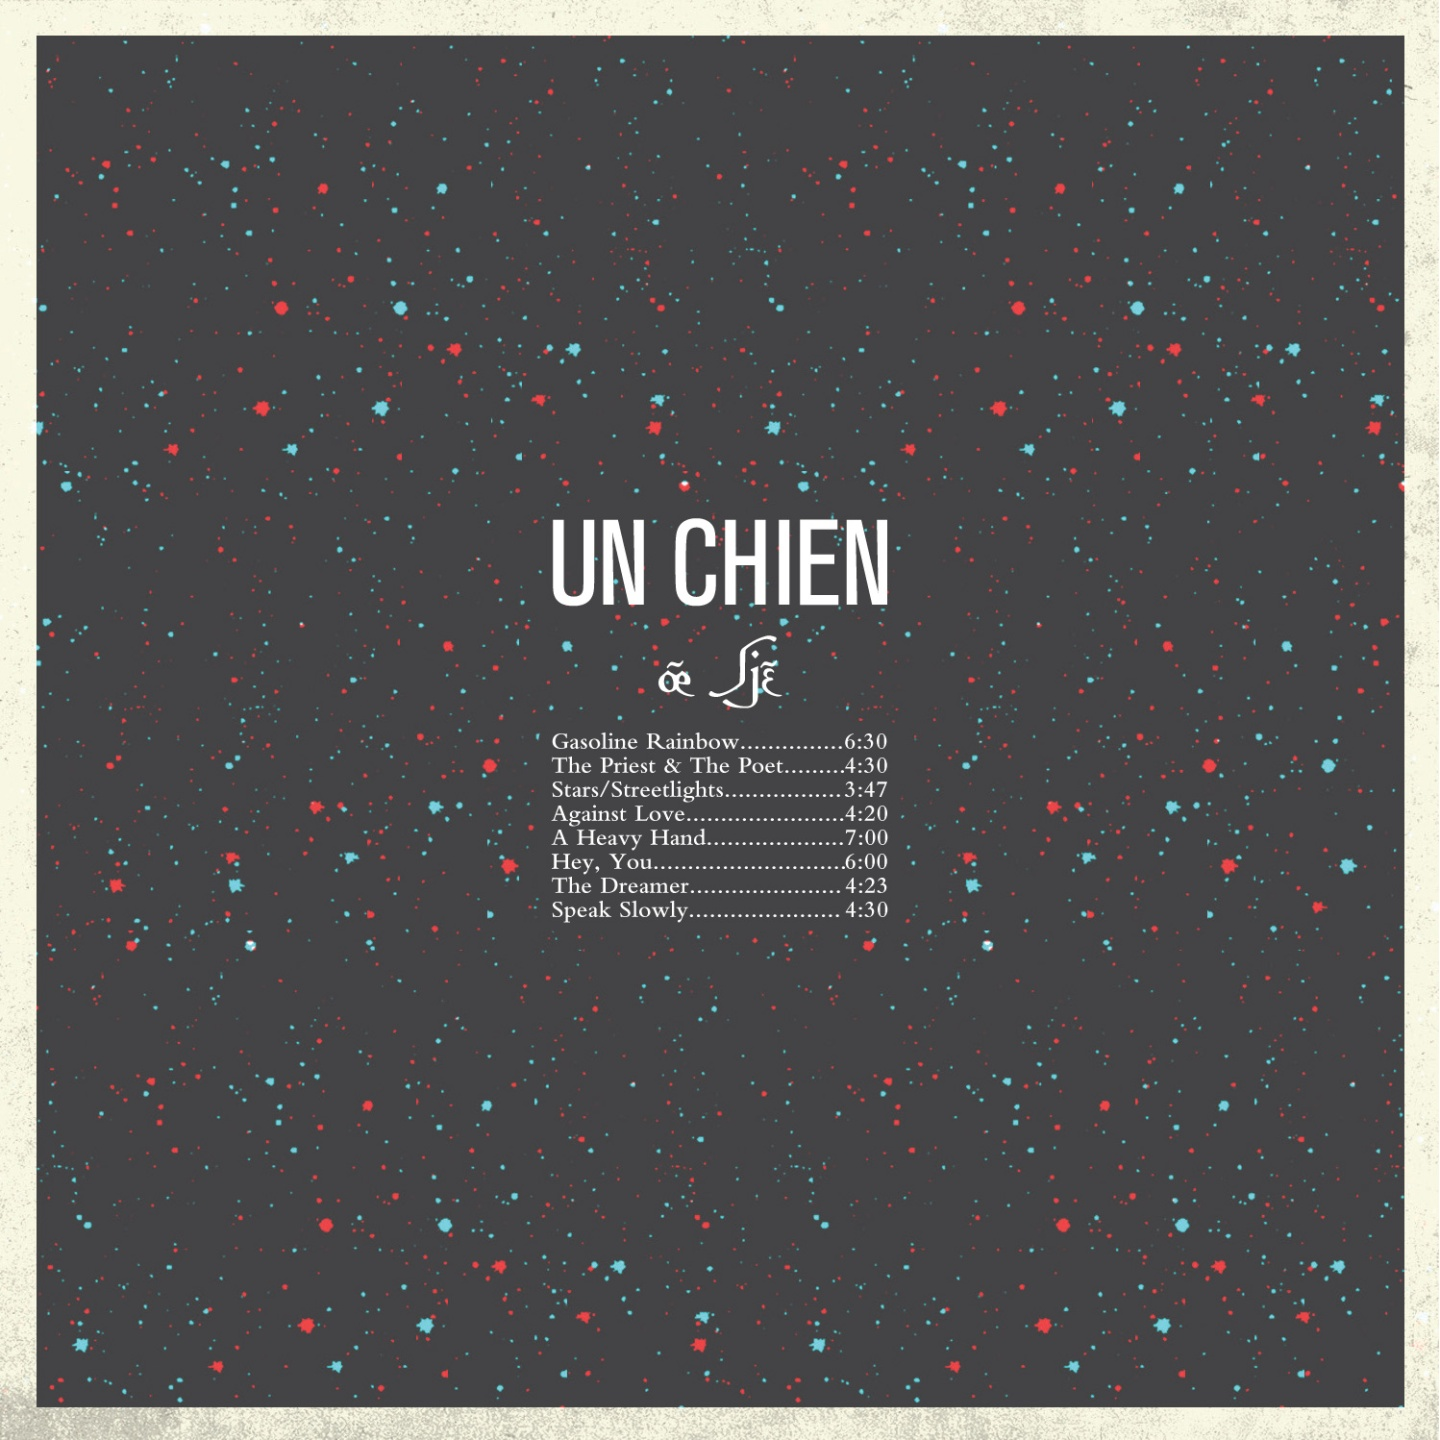 Back Cover Art: Un Chien [œ̃ ʃjɛ̃] by Jordan Roberts & Stephen Beatty 2013